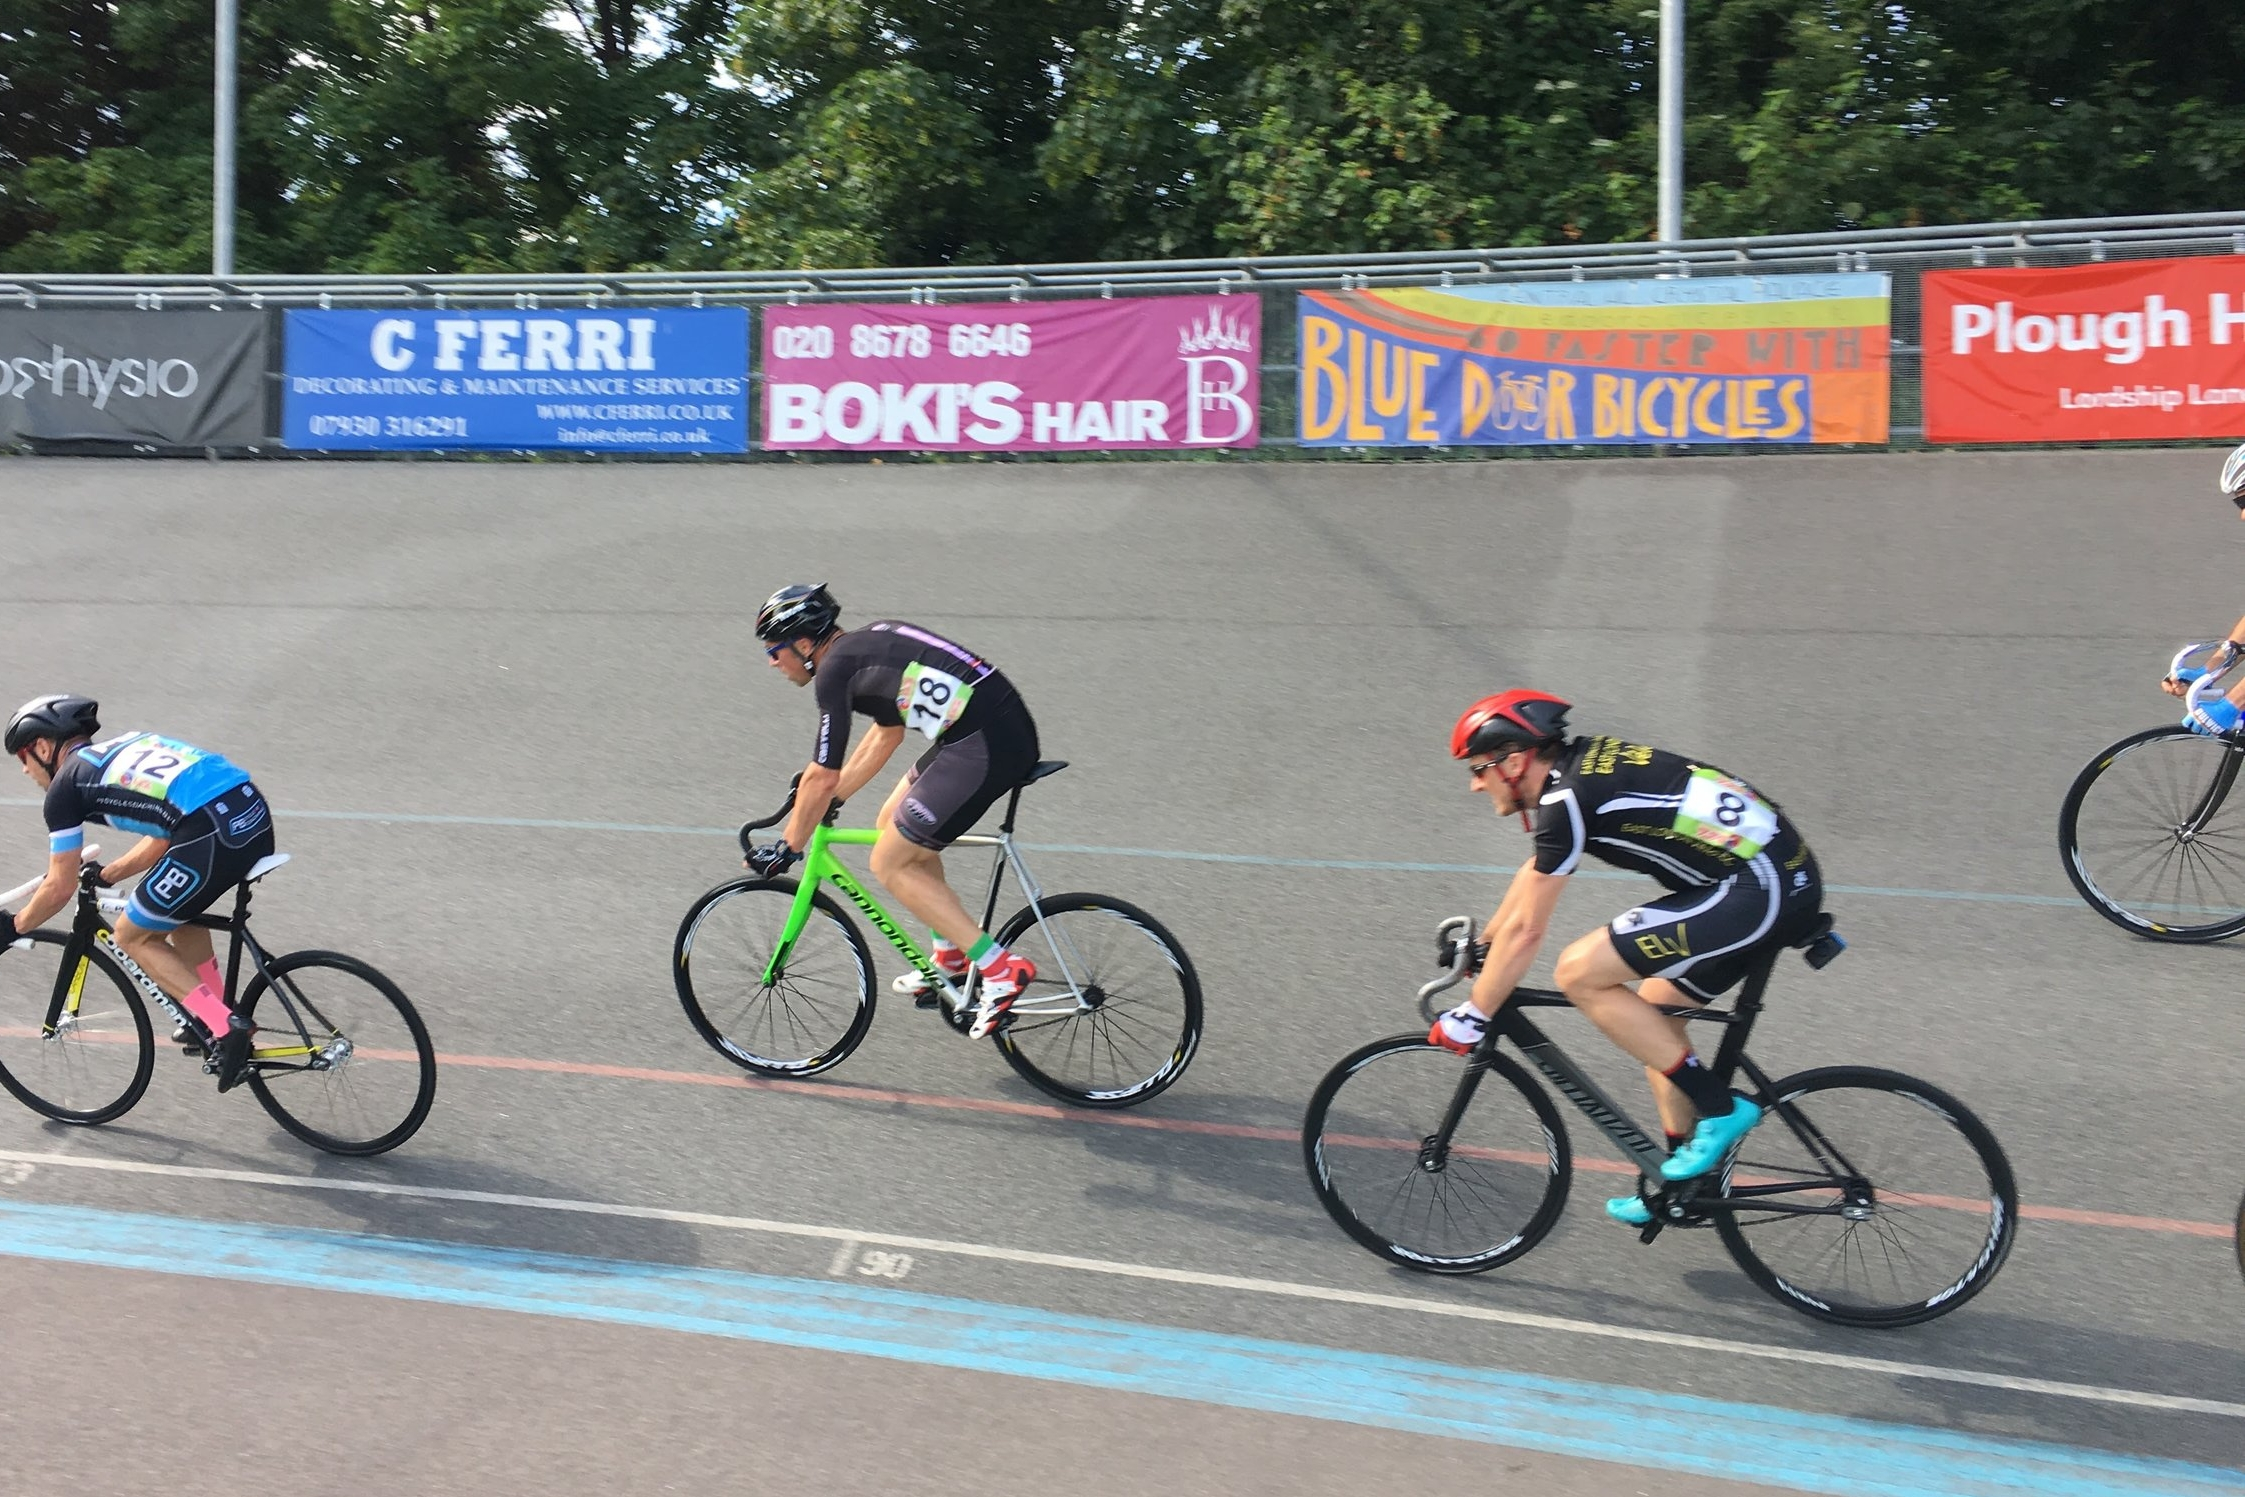 That's me with #18 during my first Track race at Herne Hill Velodrome